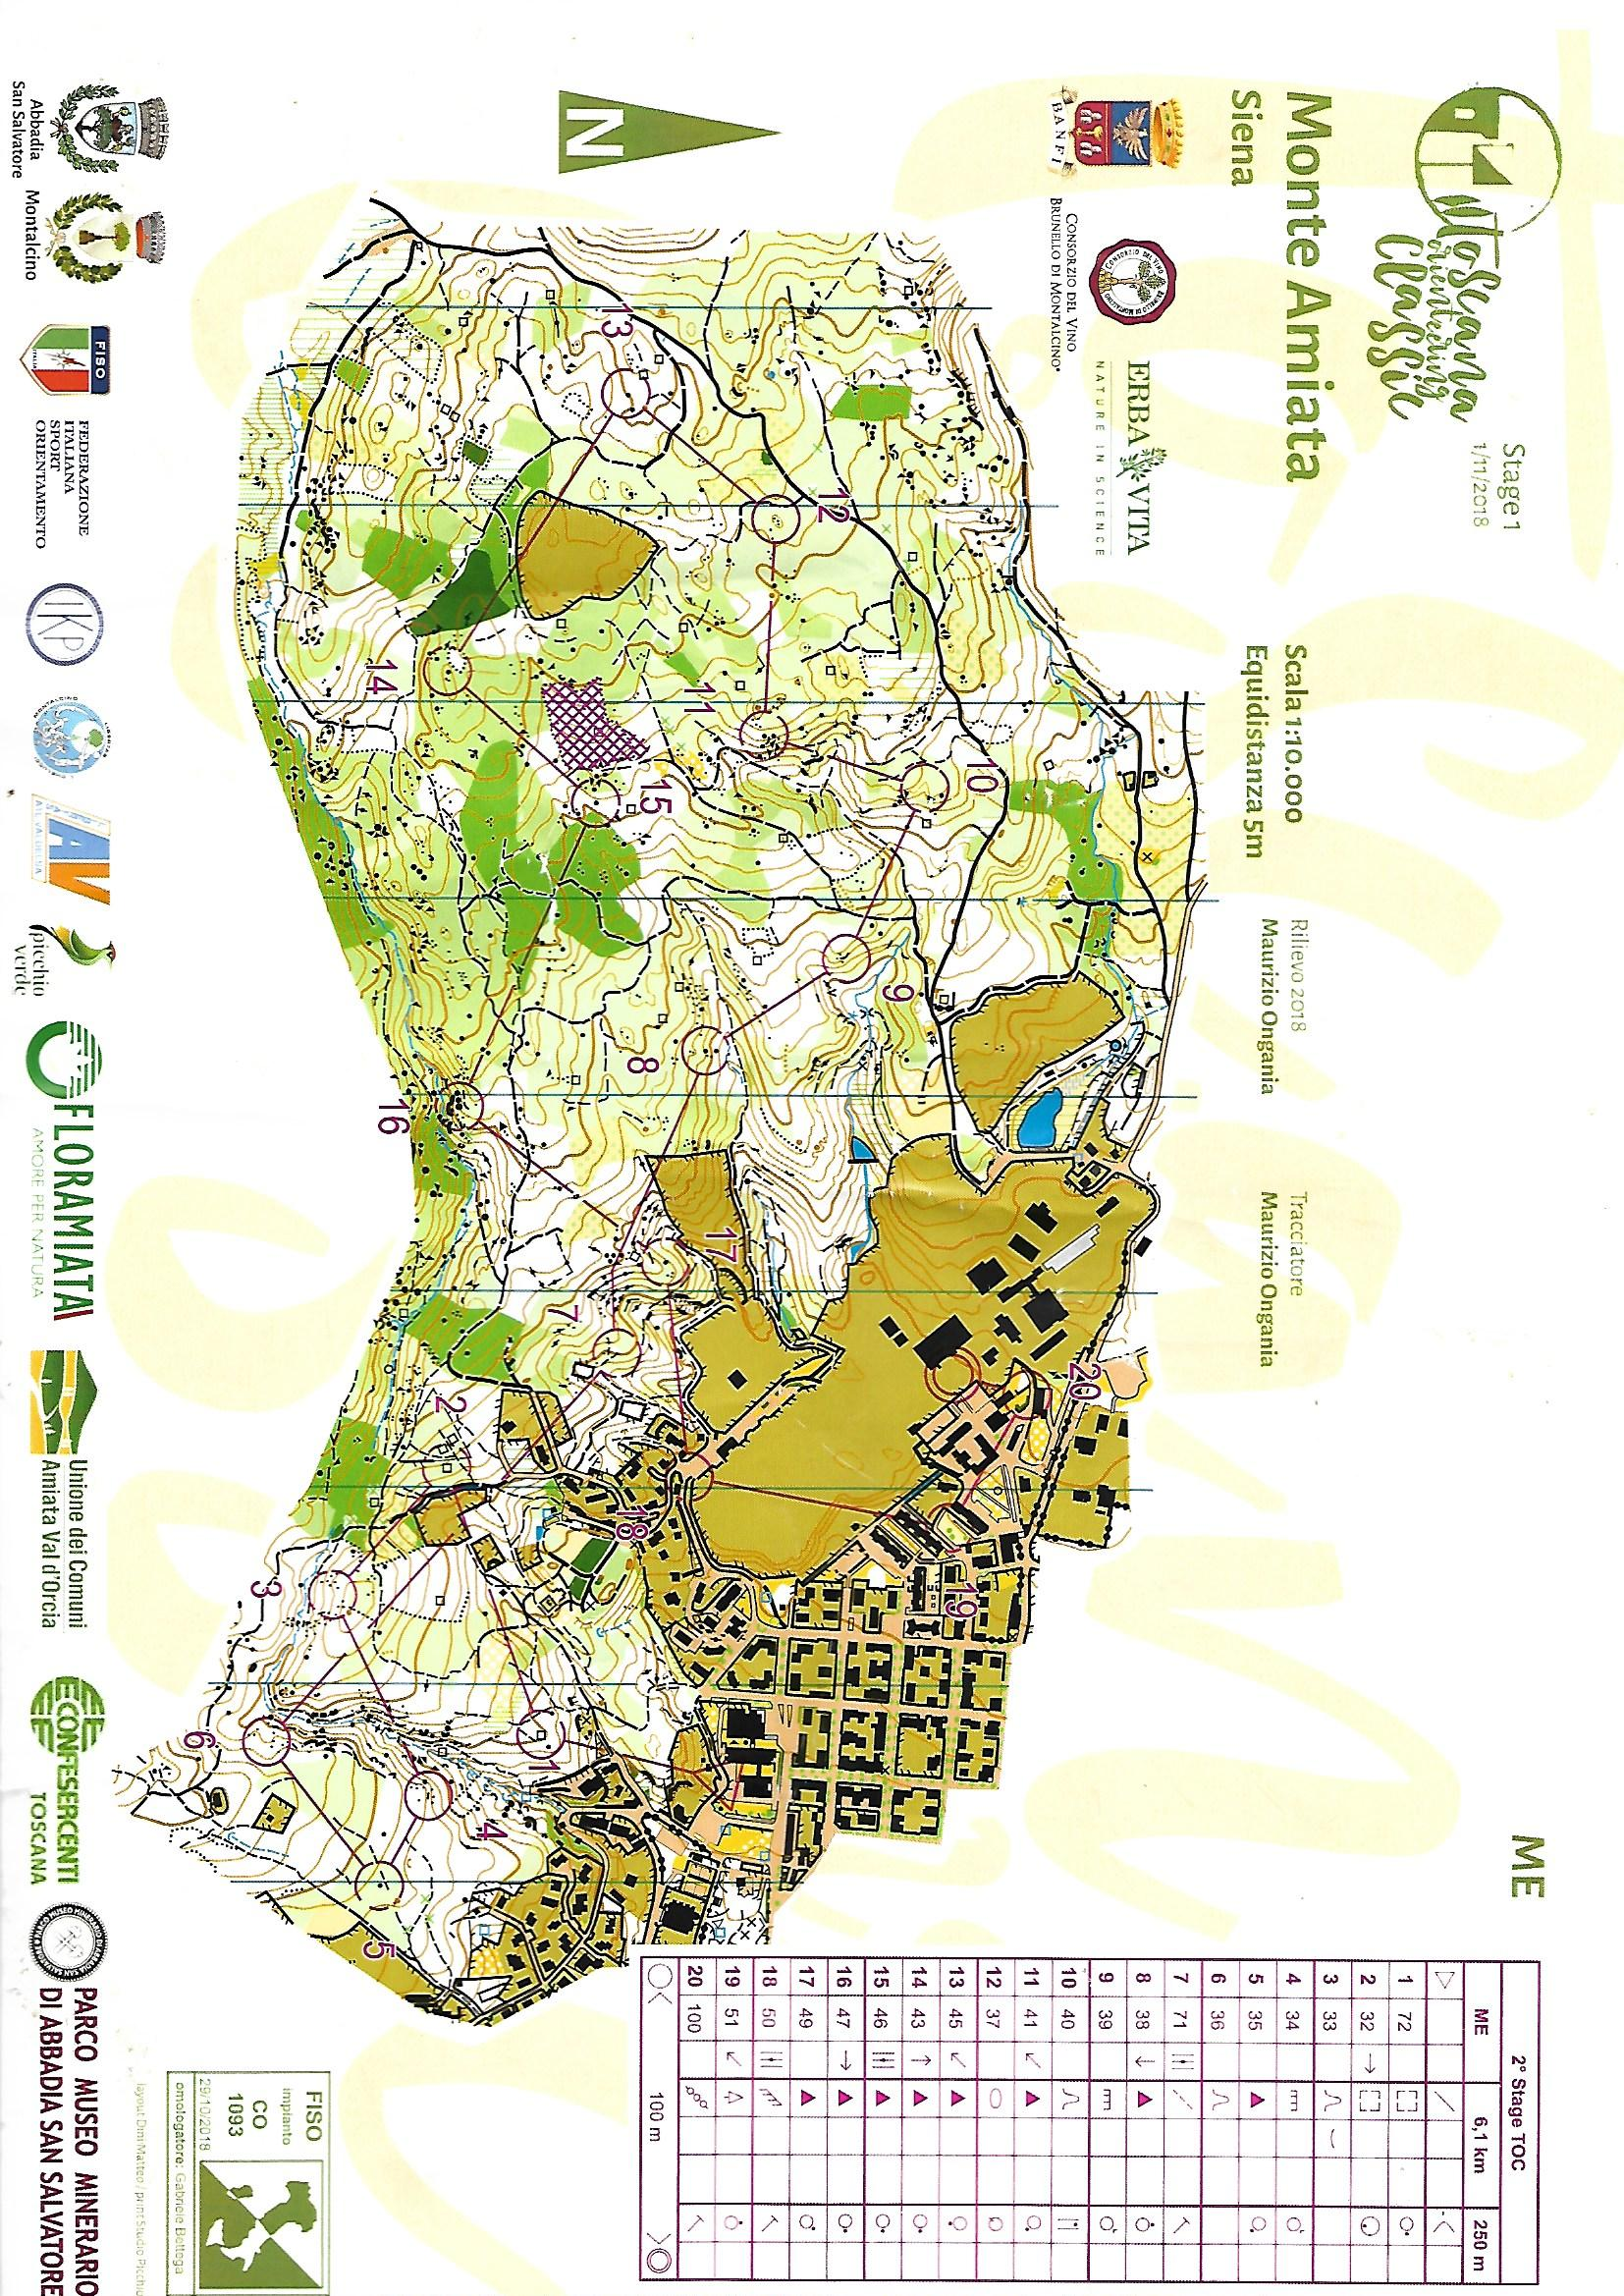 Toscany Orienteering Classic - Tappa 2 (02/11/2018)